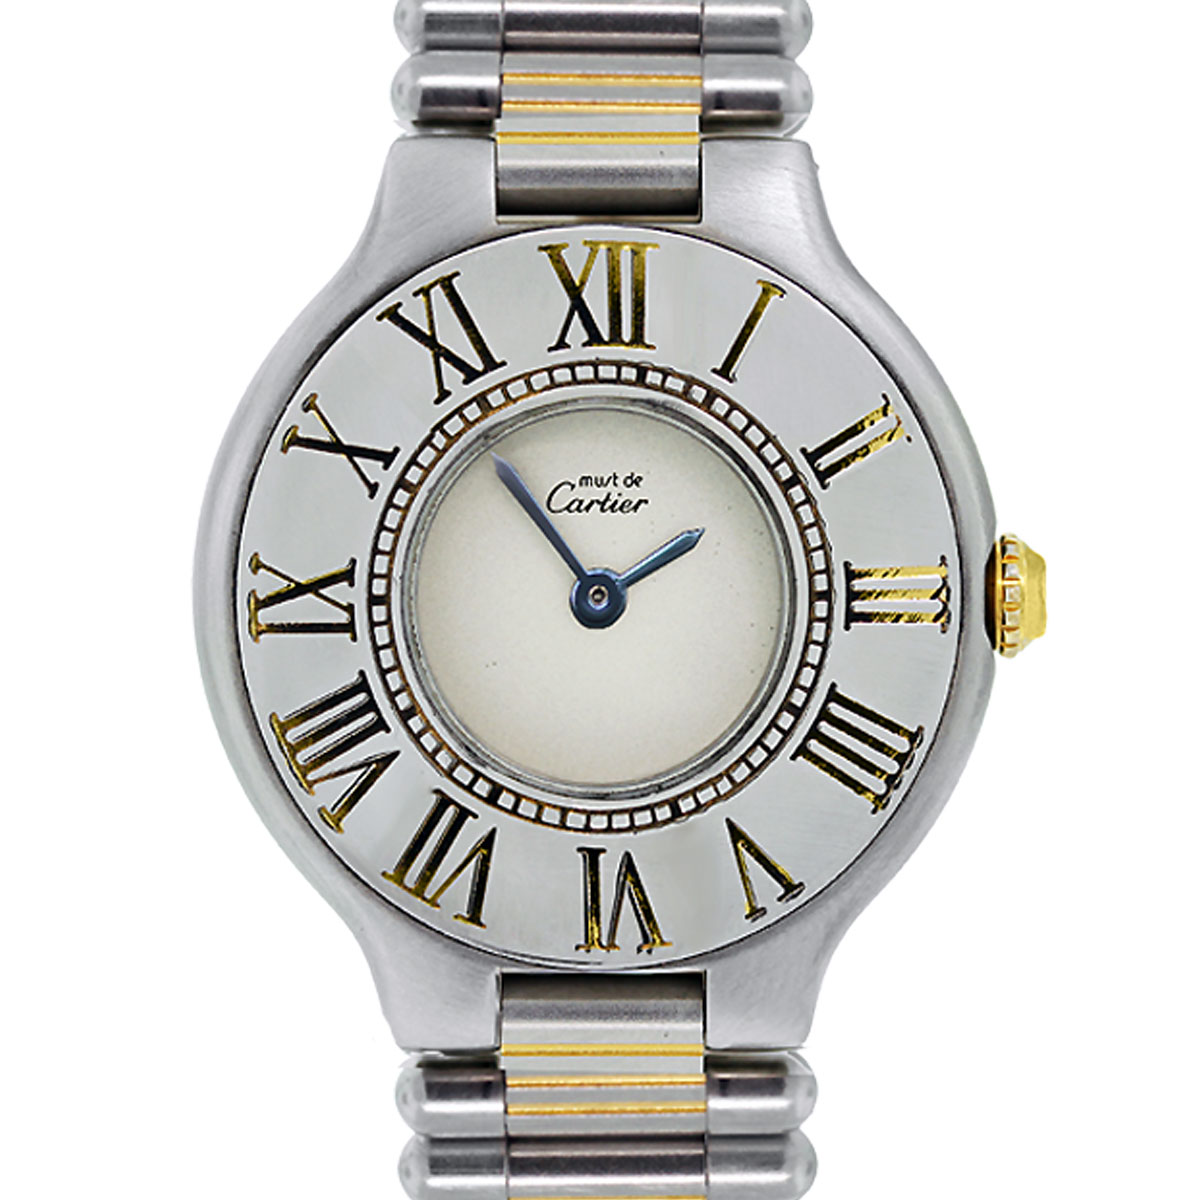 Cartier Watches Cartier Must De 21 Two Tone Quartz Ladies Watch